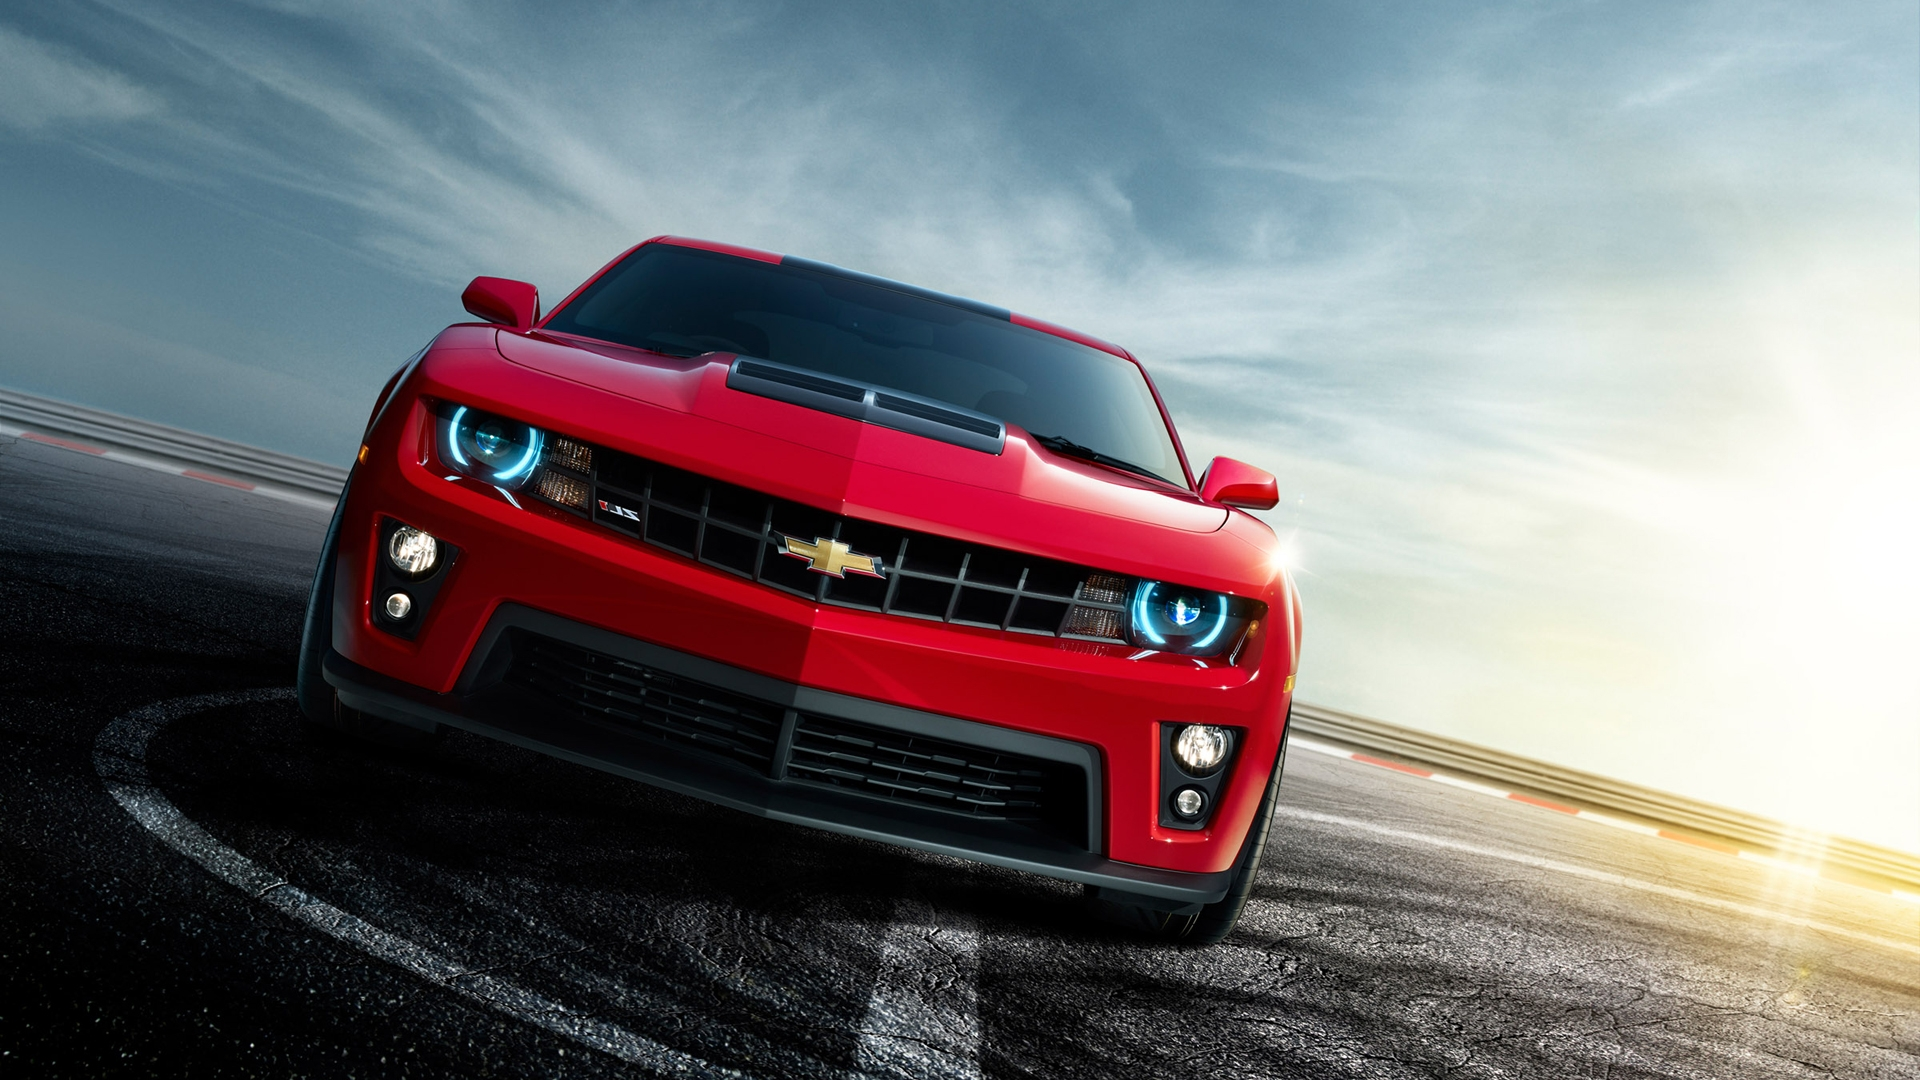 Cars Wallpapers Chevy Camaro ZL1 Best Wallpapers 9574 1920x1080 1920x1080